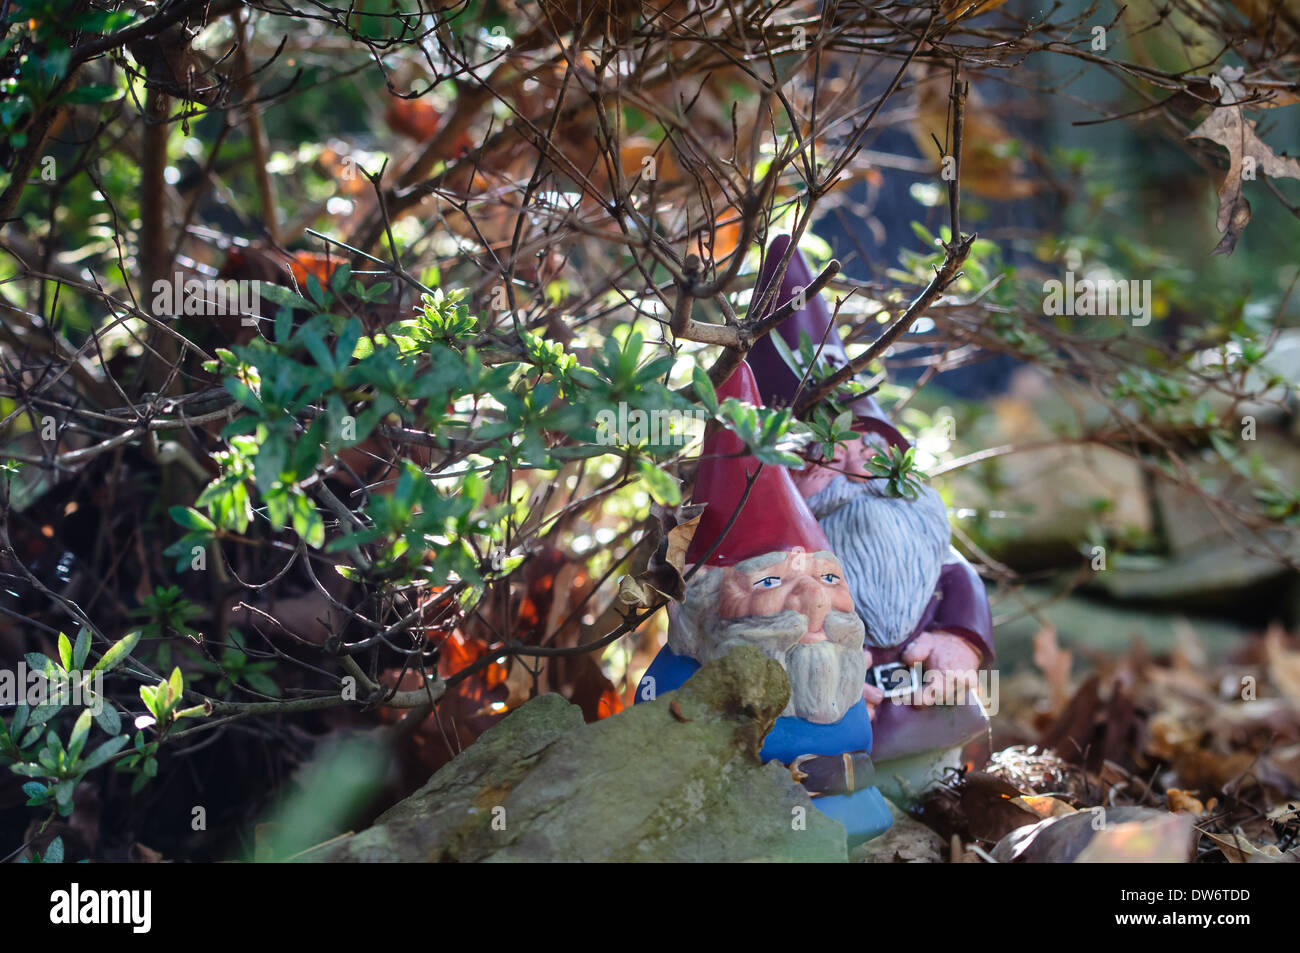 Small garden gnomes hiding in shrubbery outside - Stock Image